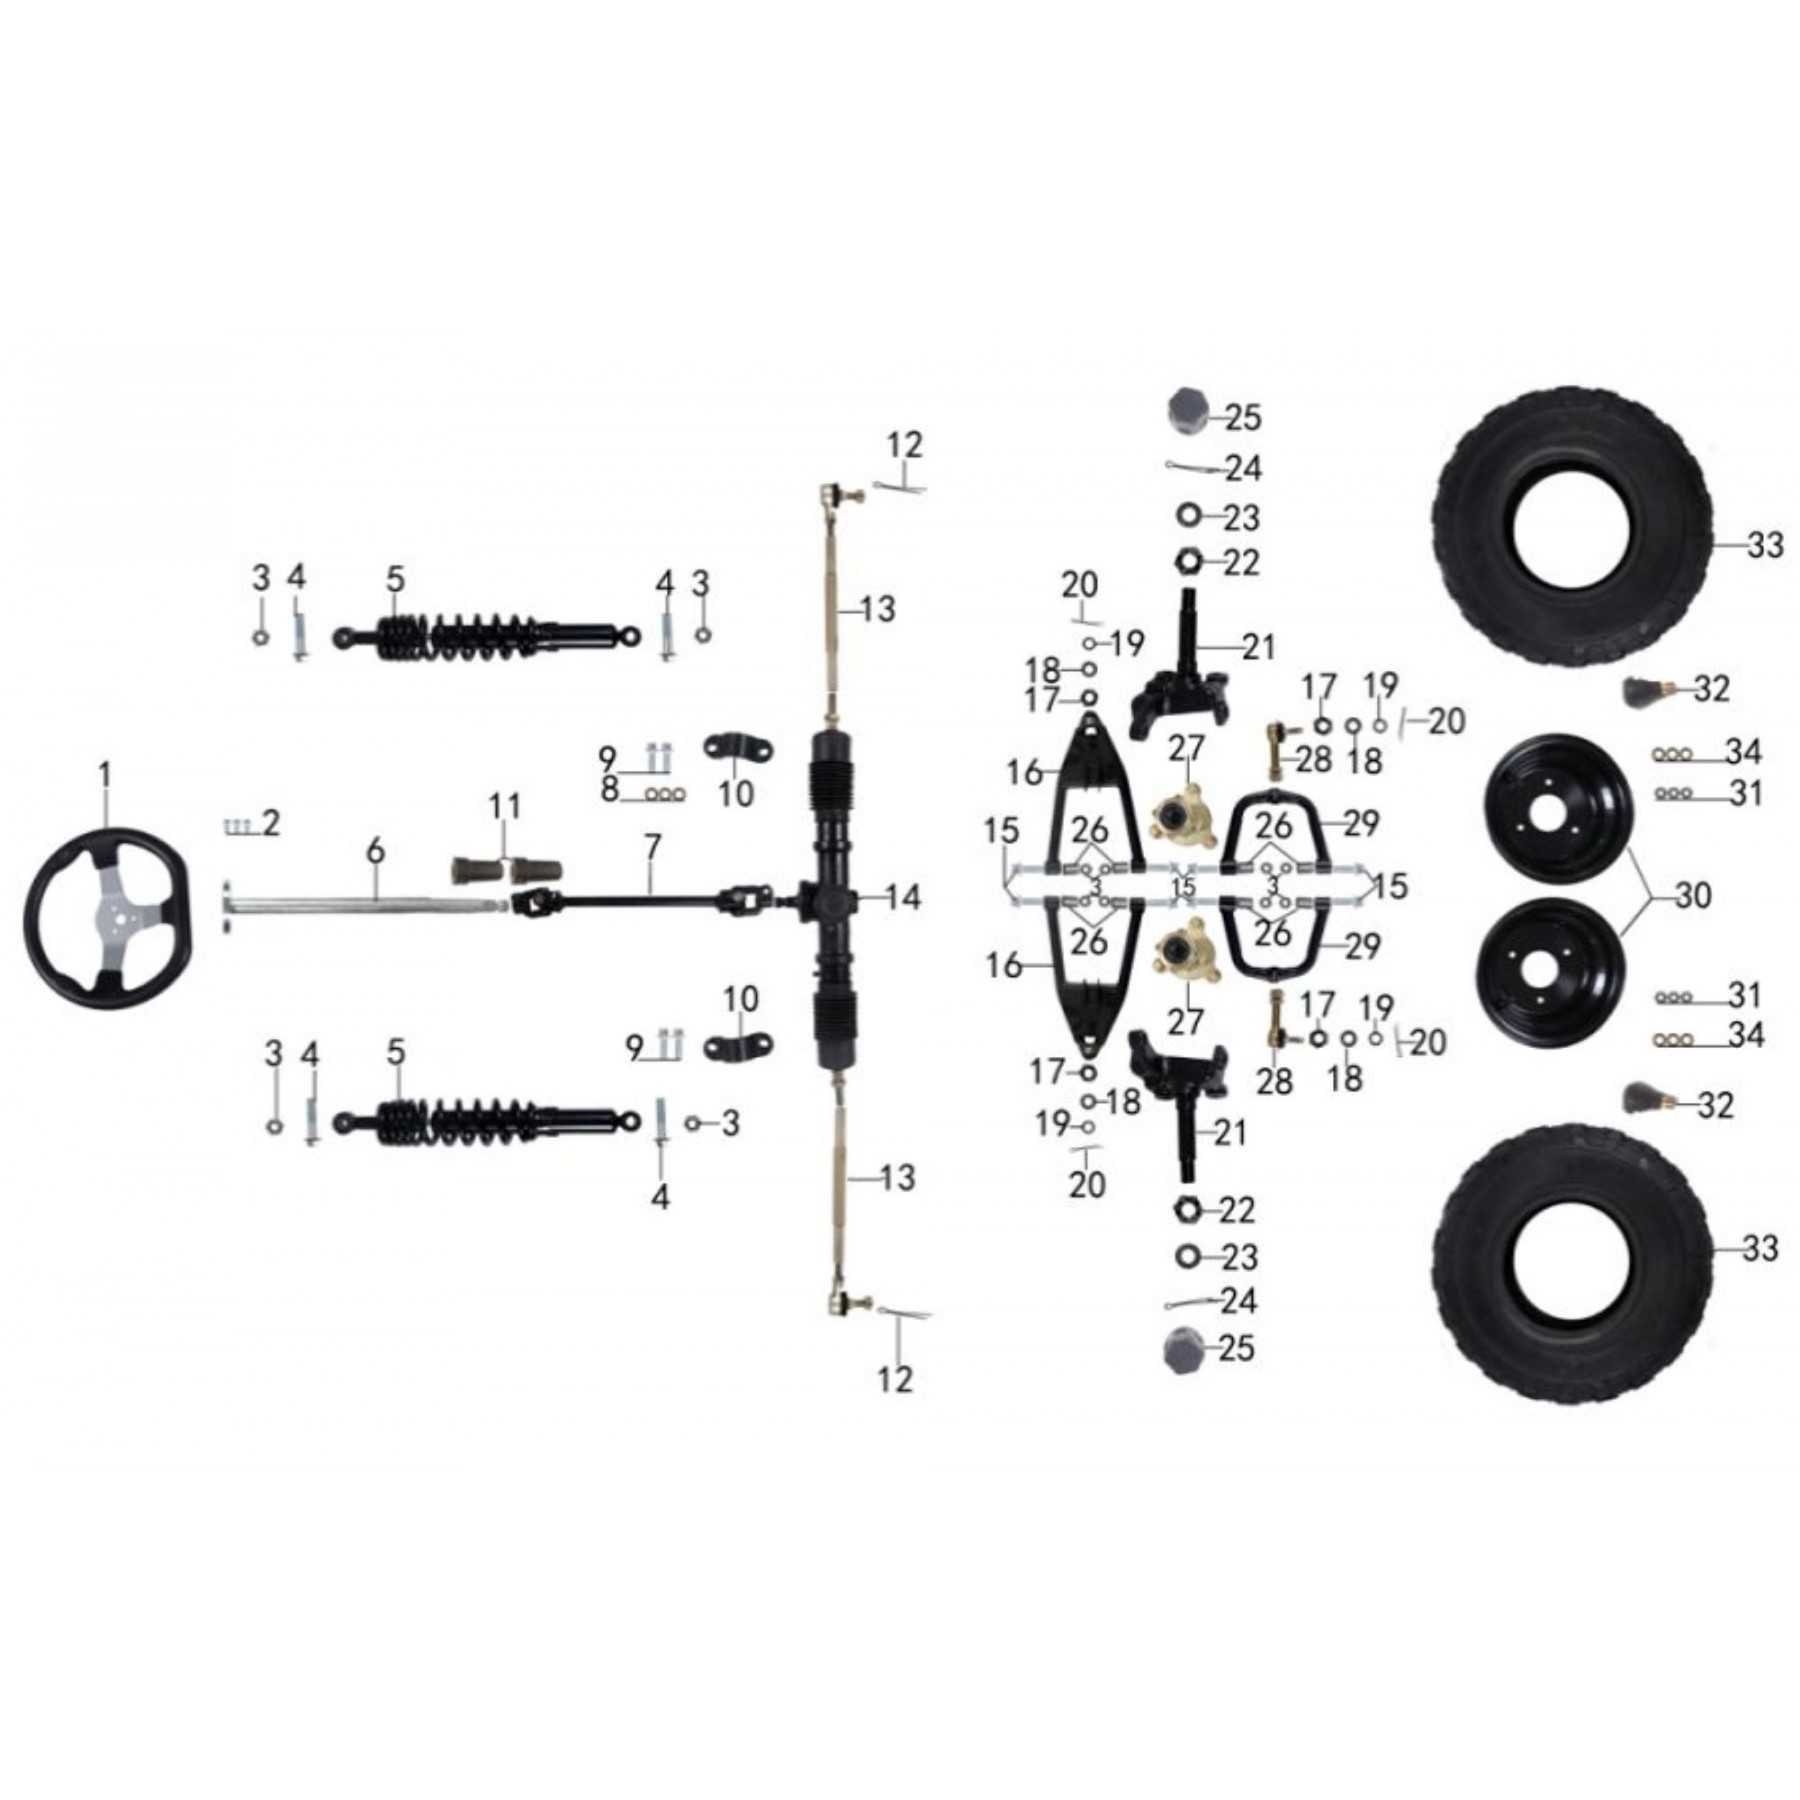 front suspension and steering system for atk 125cc-vtt lachute